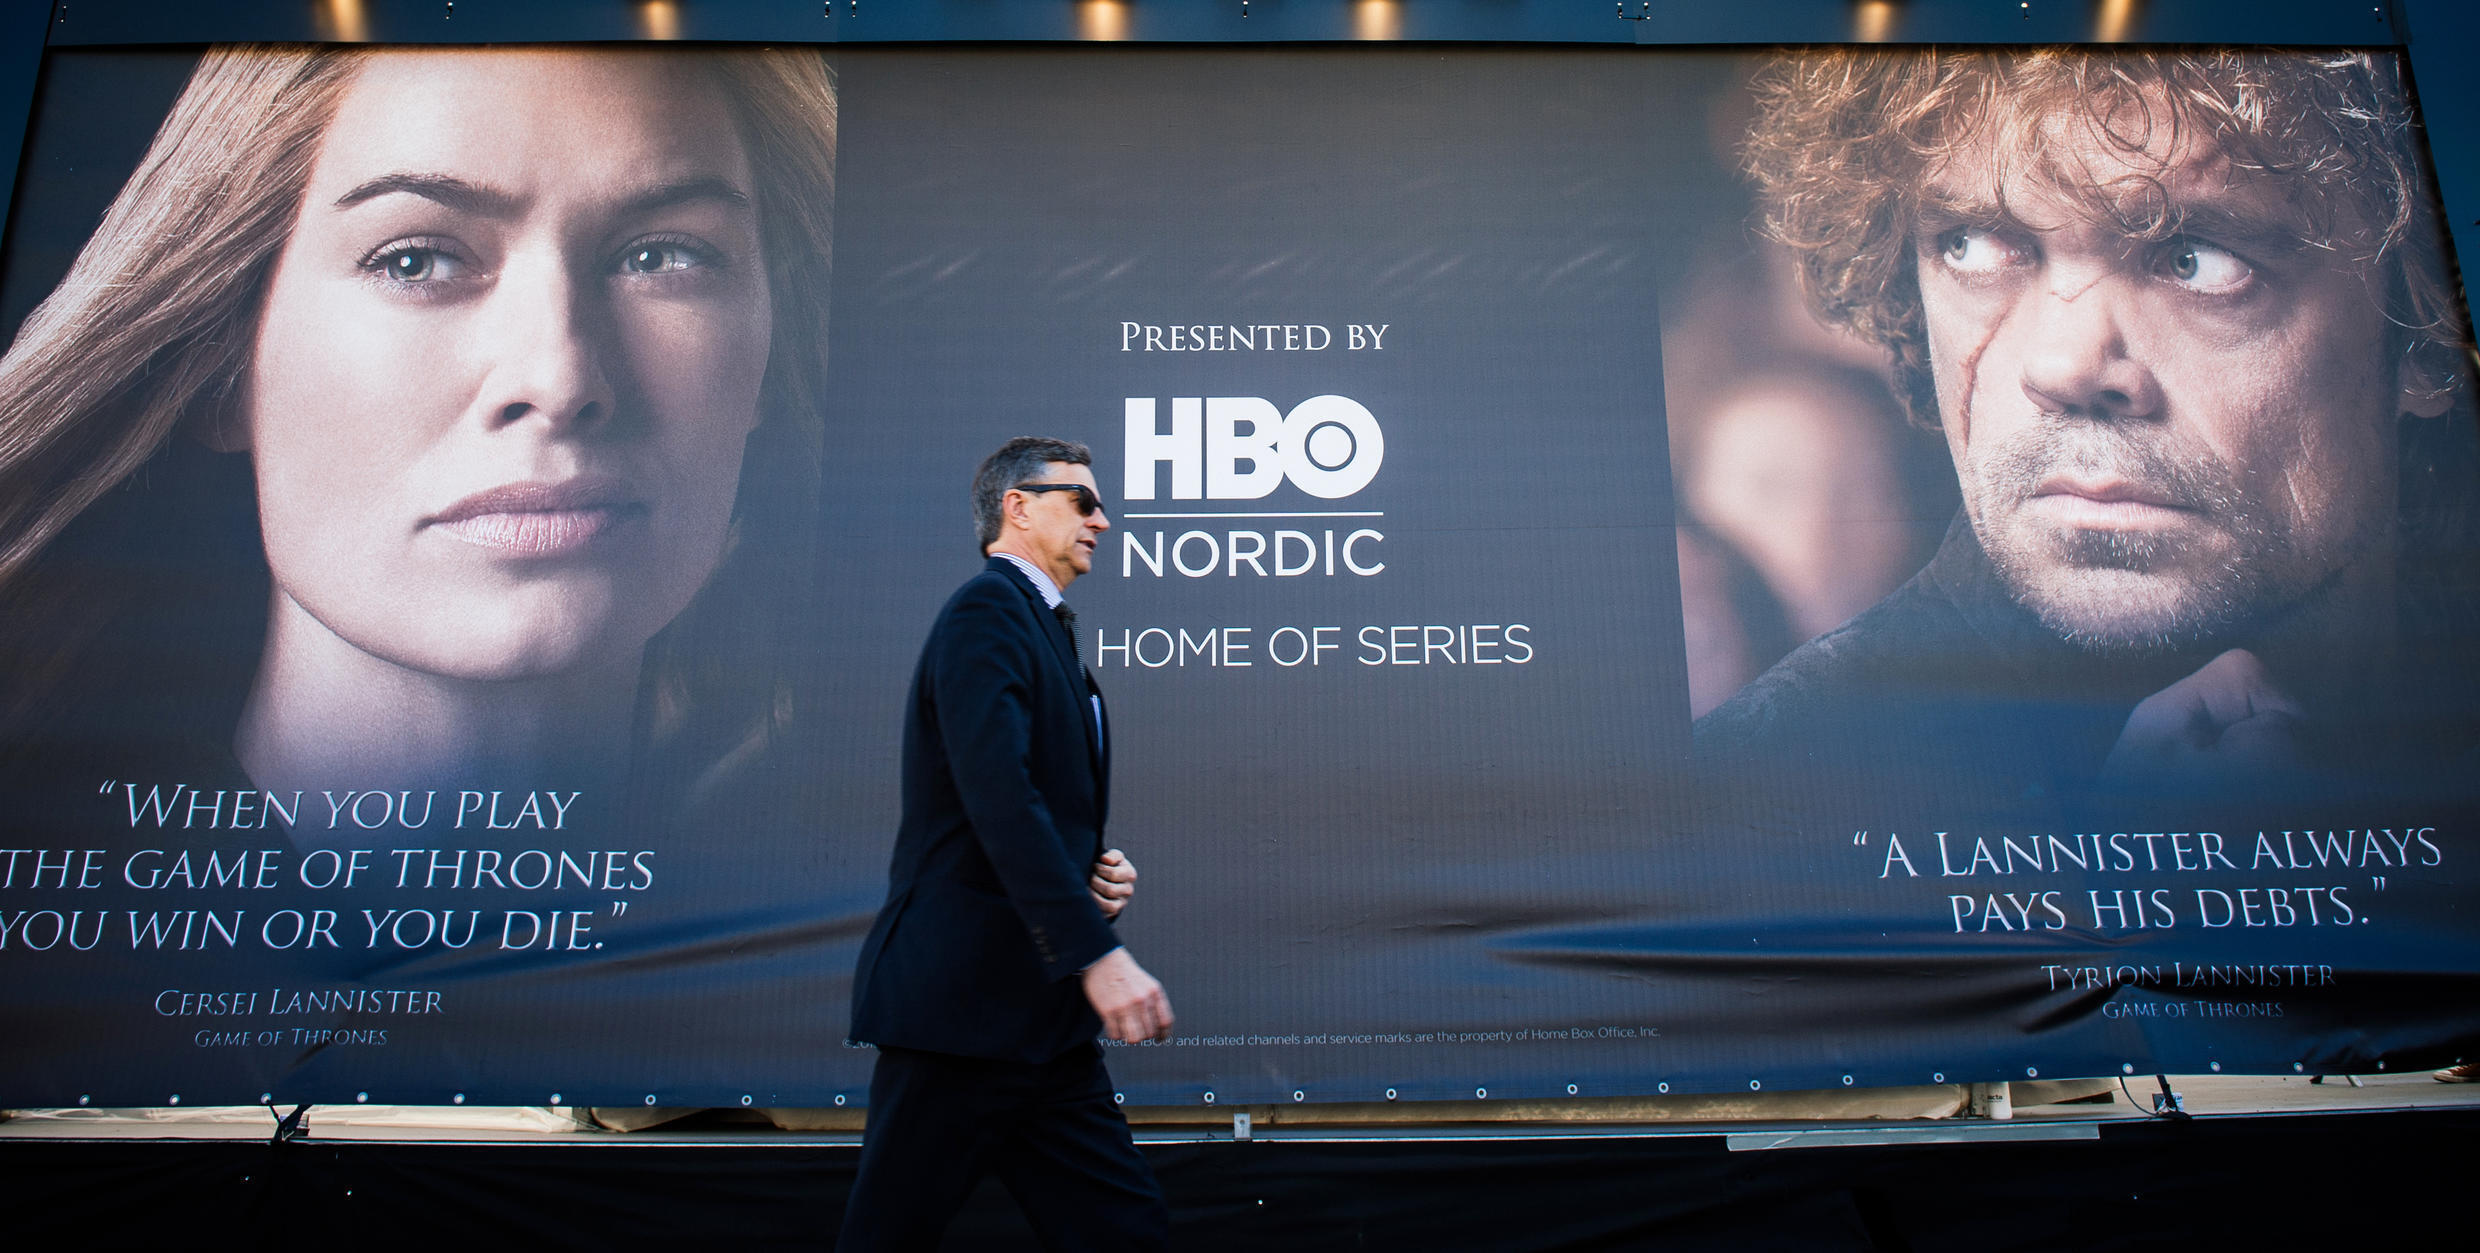 """Trom TV spinoffs to the long-awaited final books, """"Game of Thrones"""" fans have plenty more to look forward to"""